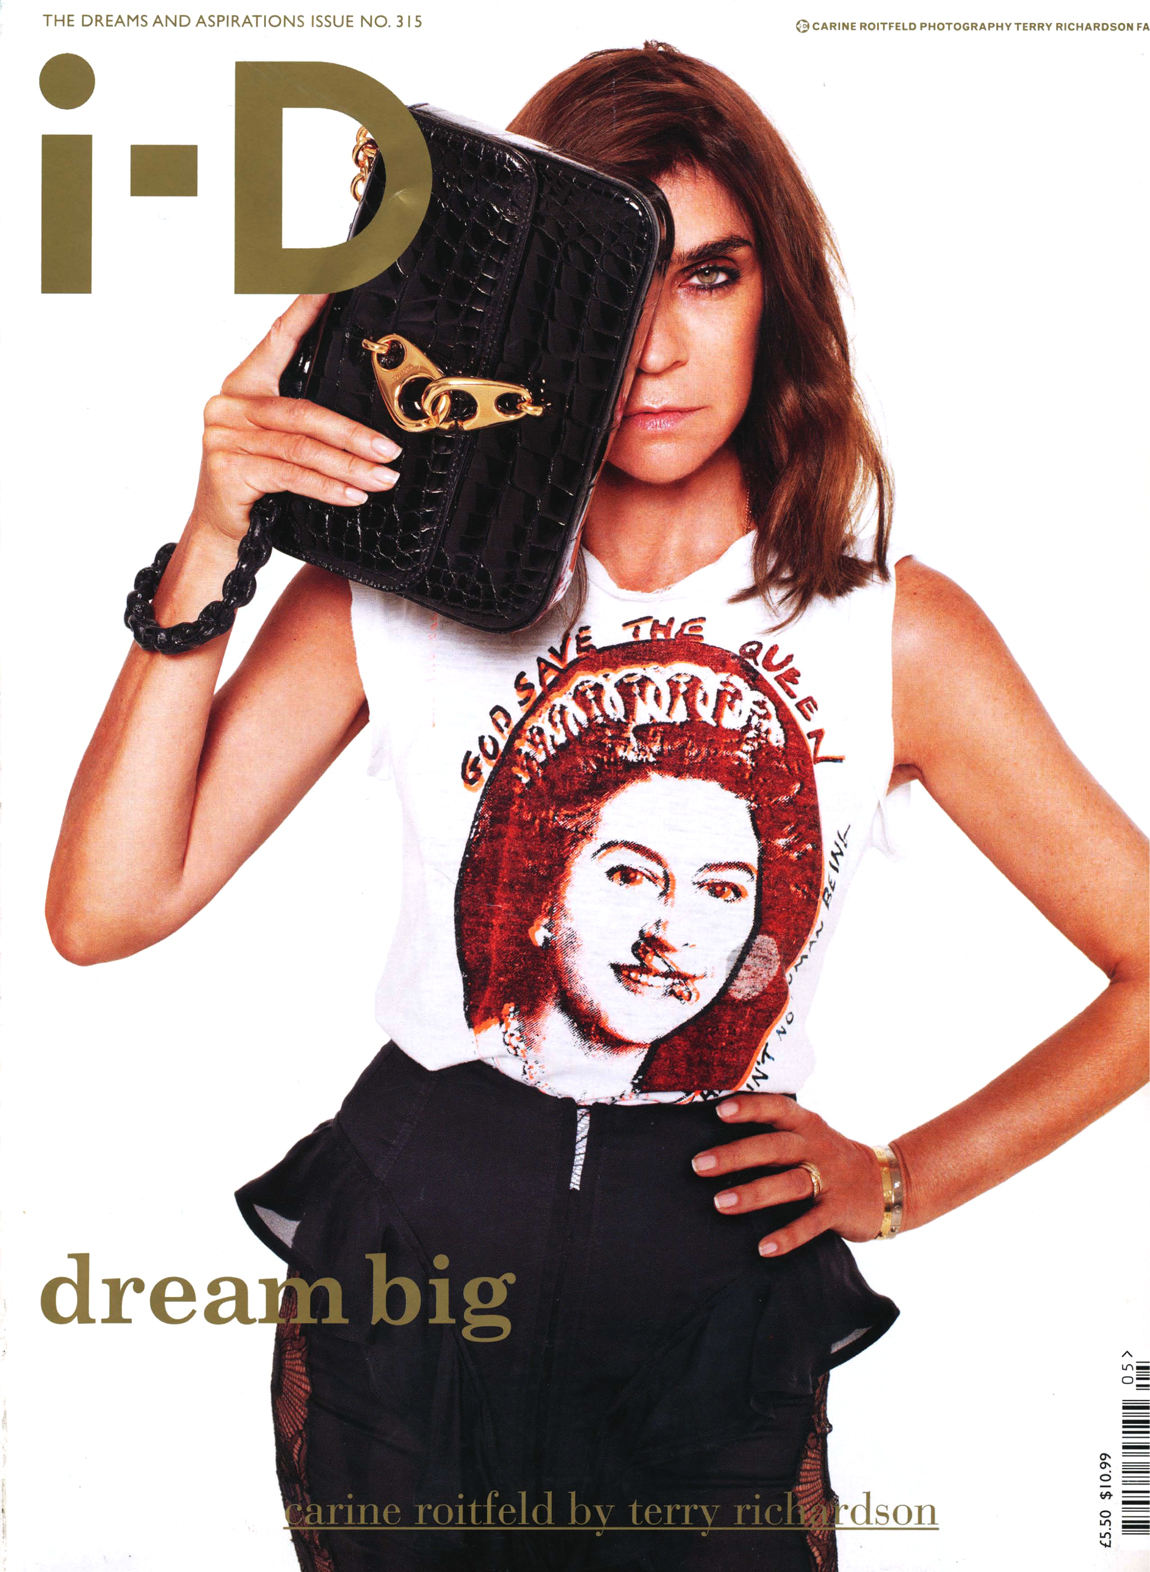 Press ID Magazine 1 I D + M.I.A + VICEmedia   un grande debutto